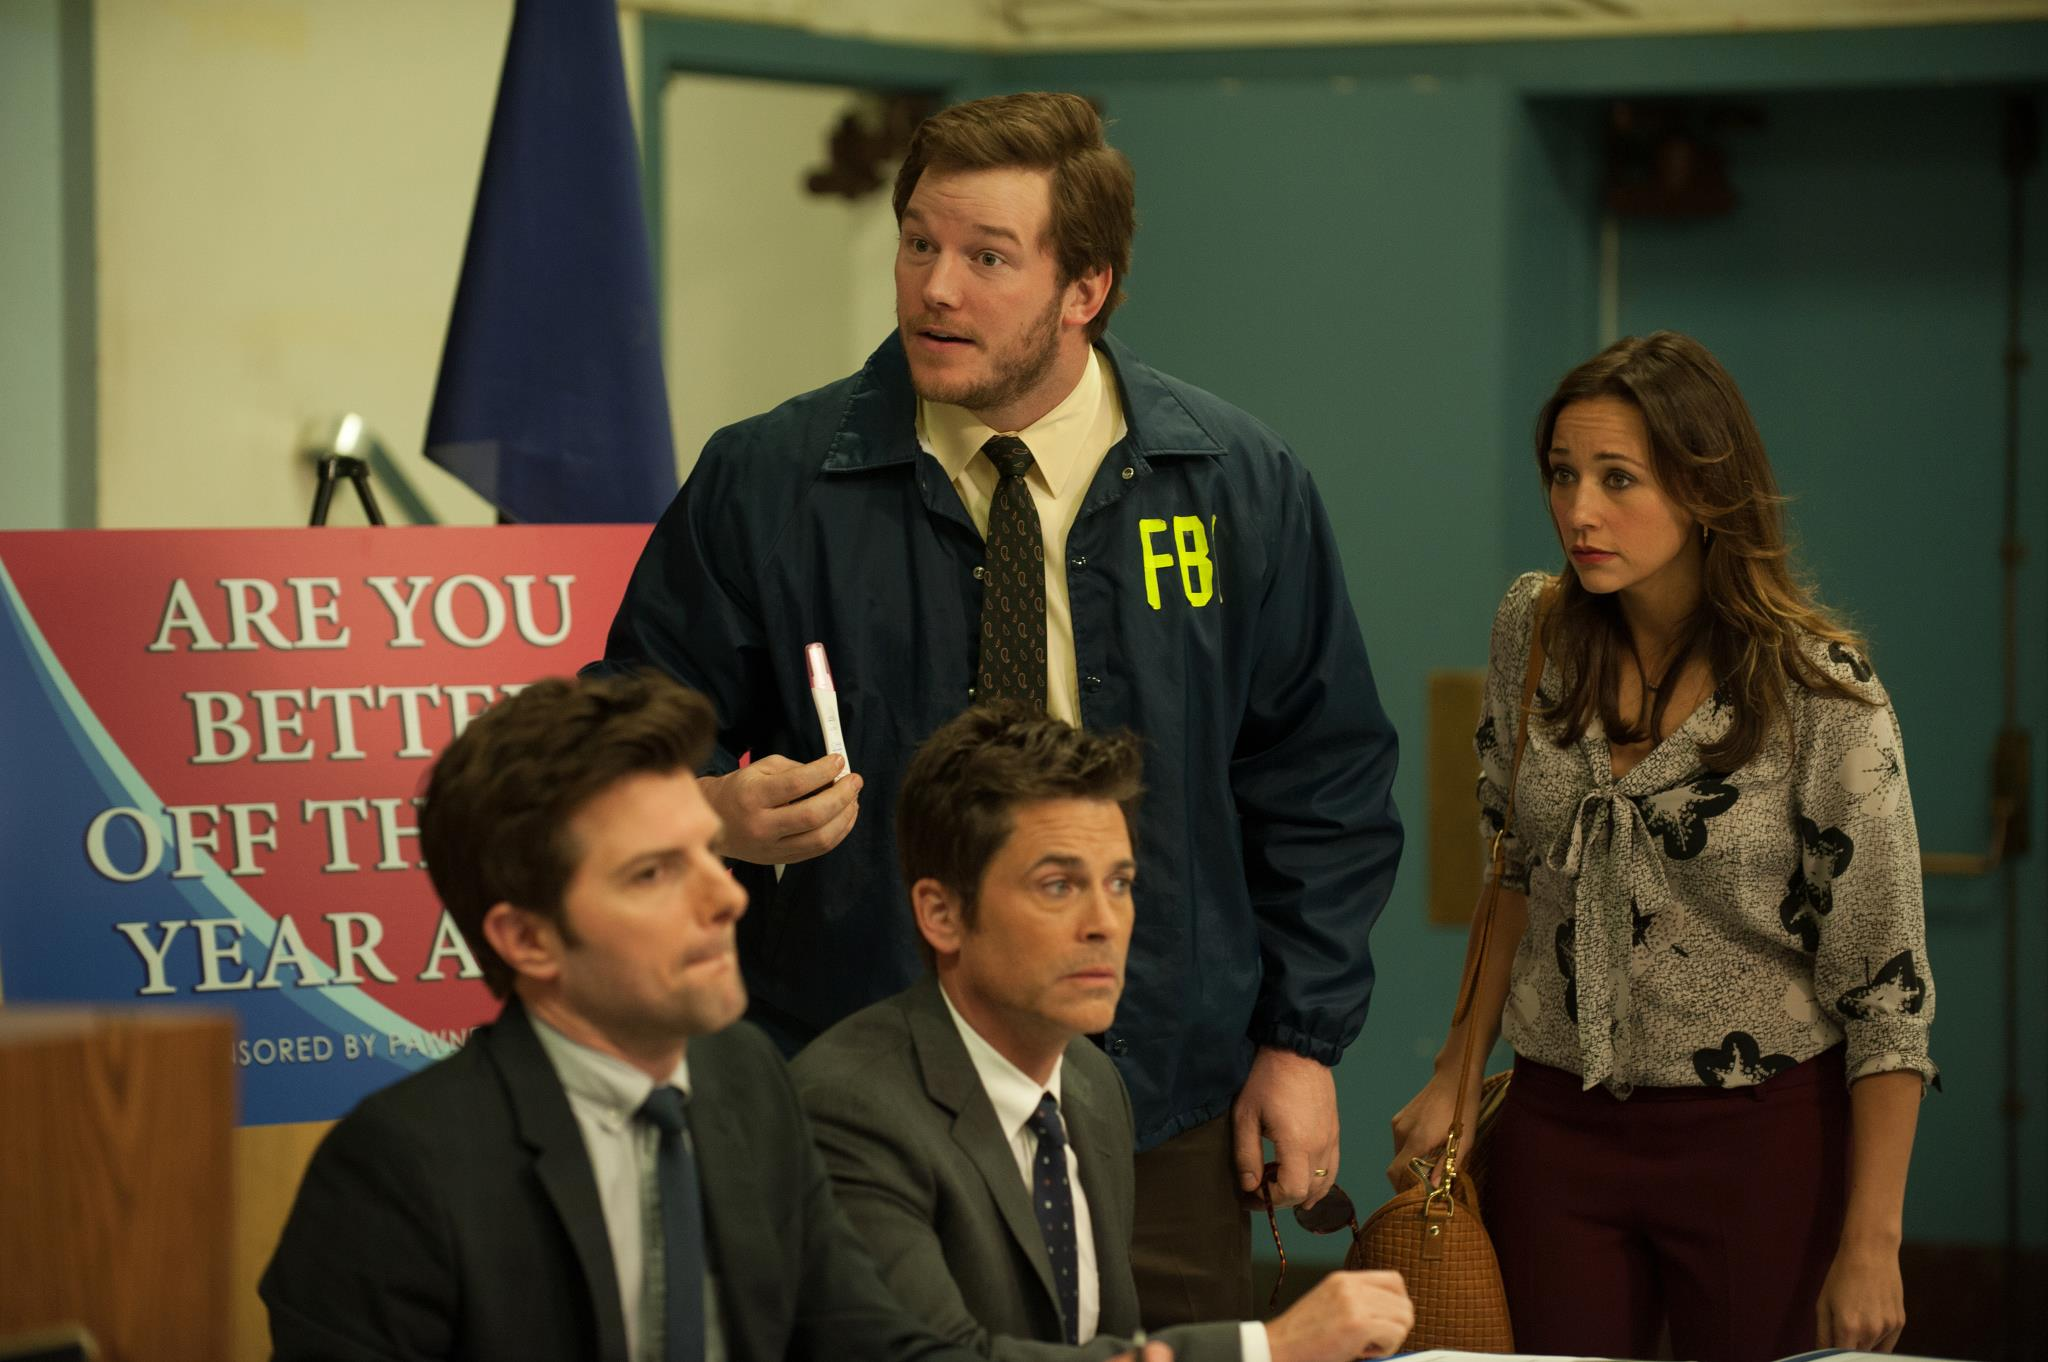 Parks and Recreation - 05x22 - Are You Better Off